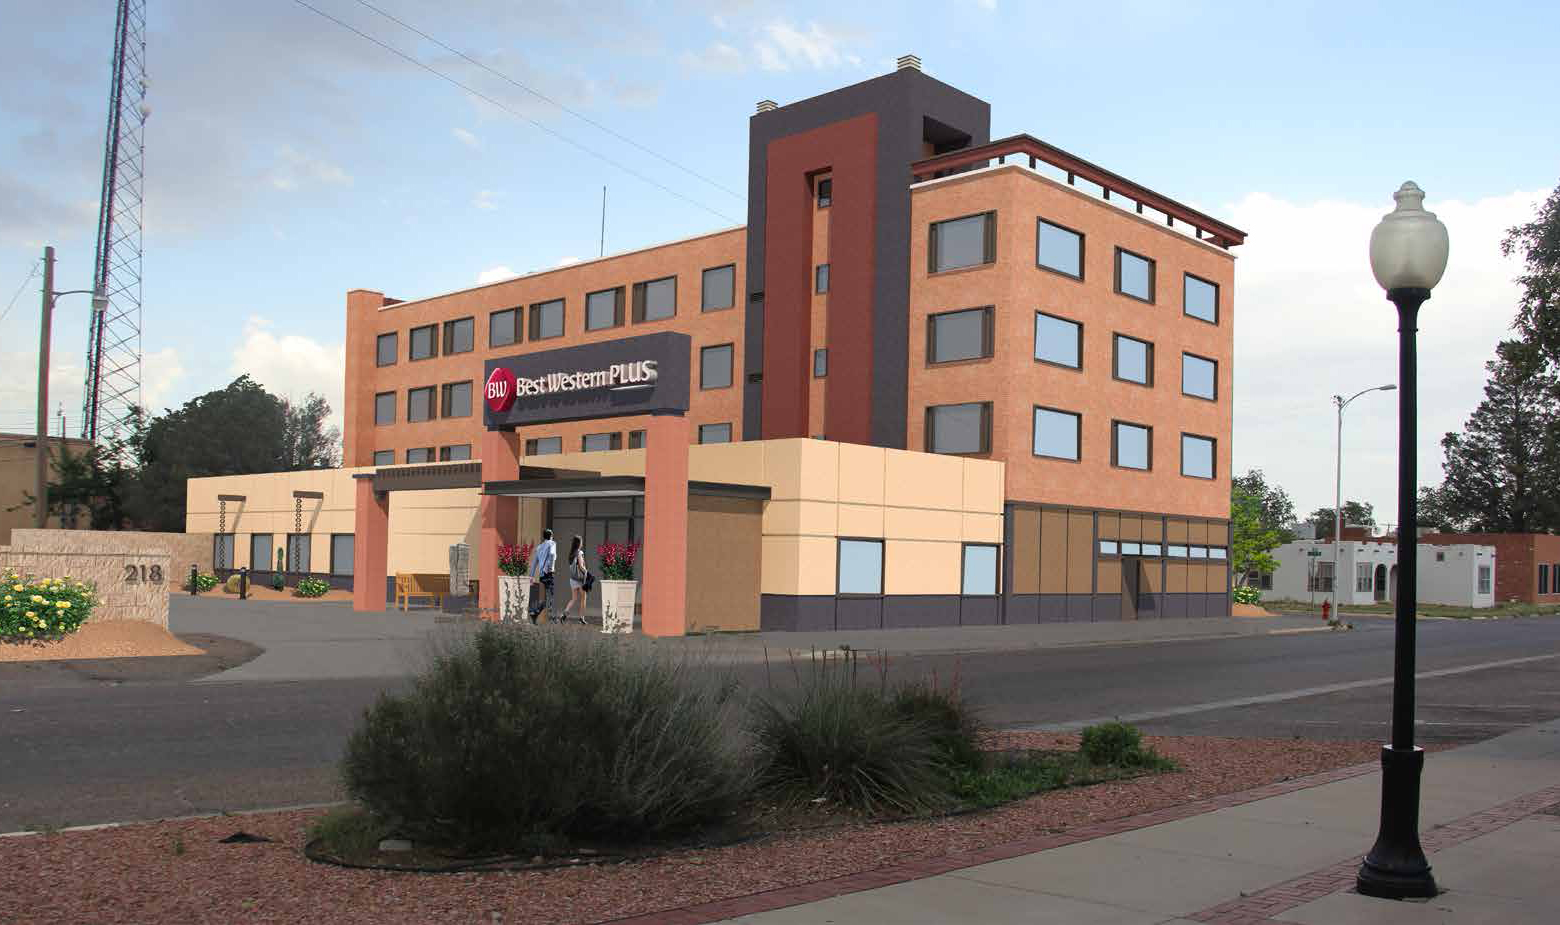 Best Western Plus – Portales Inn, Portales, New Mexico (First Quarter 2019)